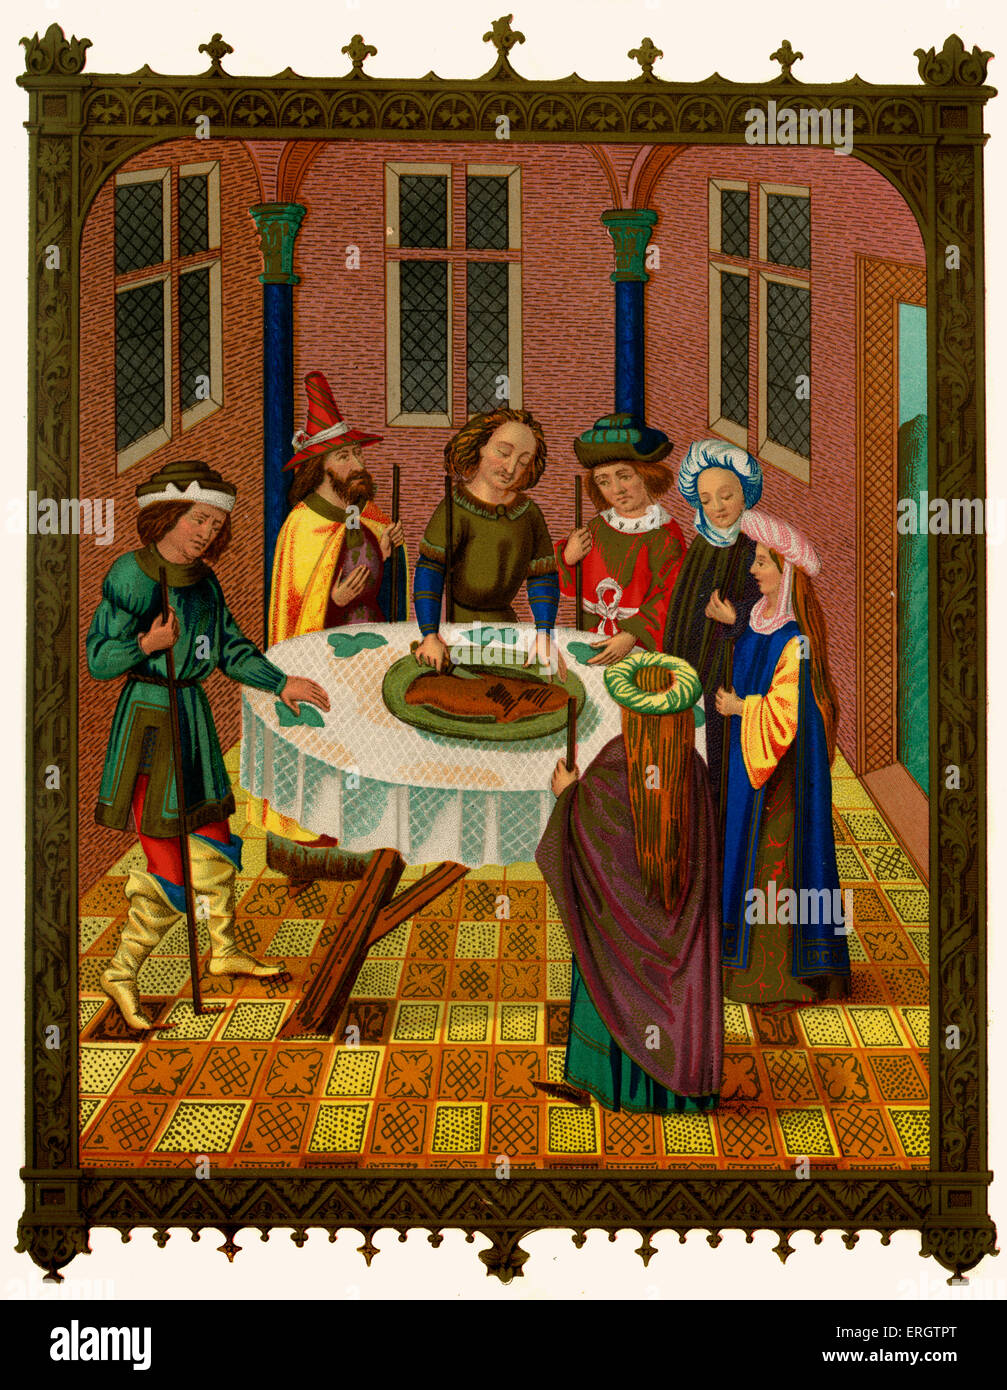 Passover (or Pesach or Pesah or Festival of Matzot) - medieval Jews celebrating the Jewish holiday, 15th century. - Stock Image